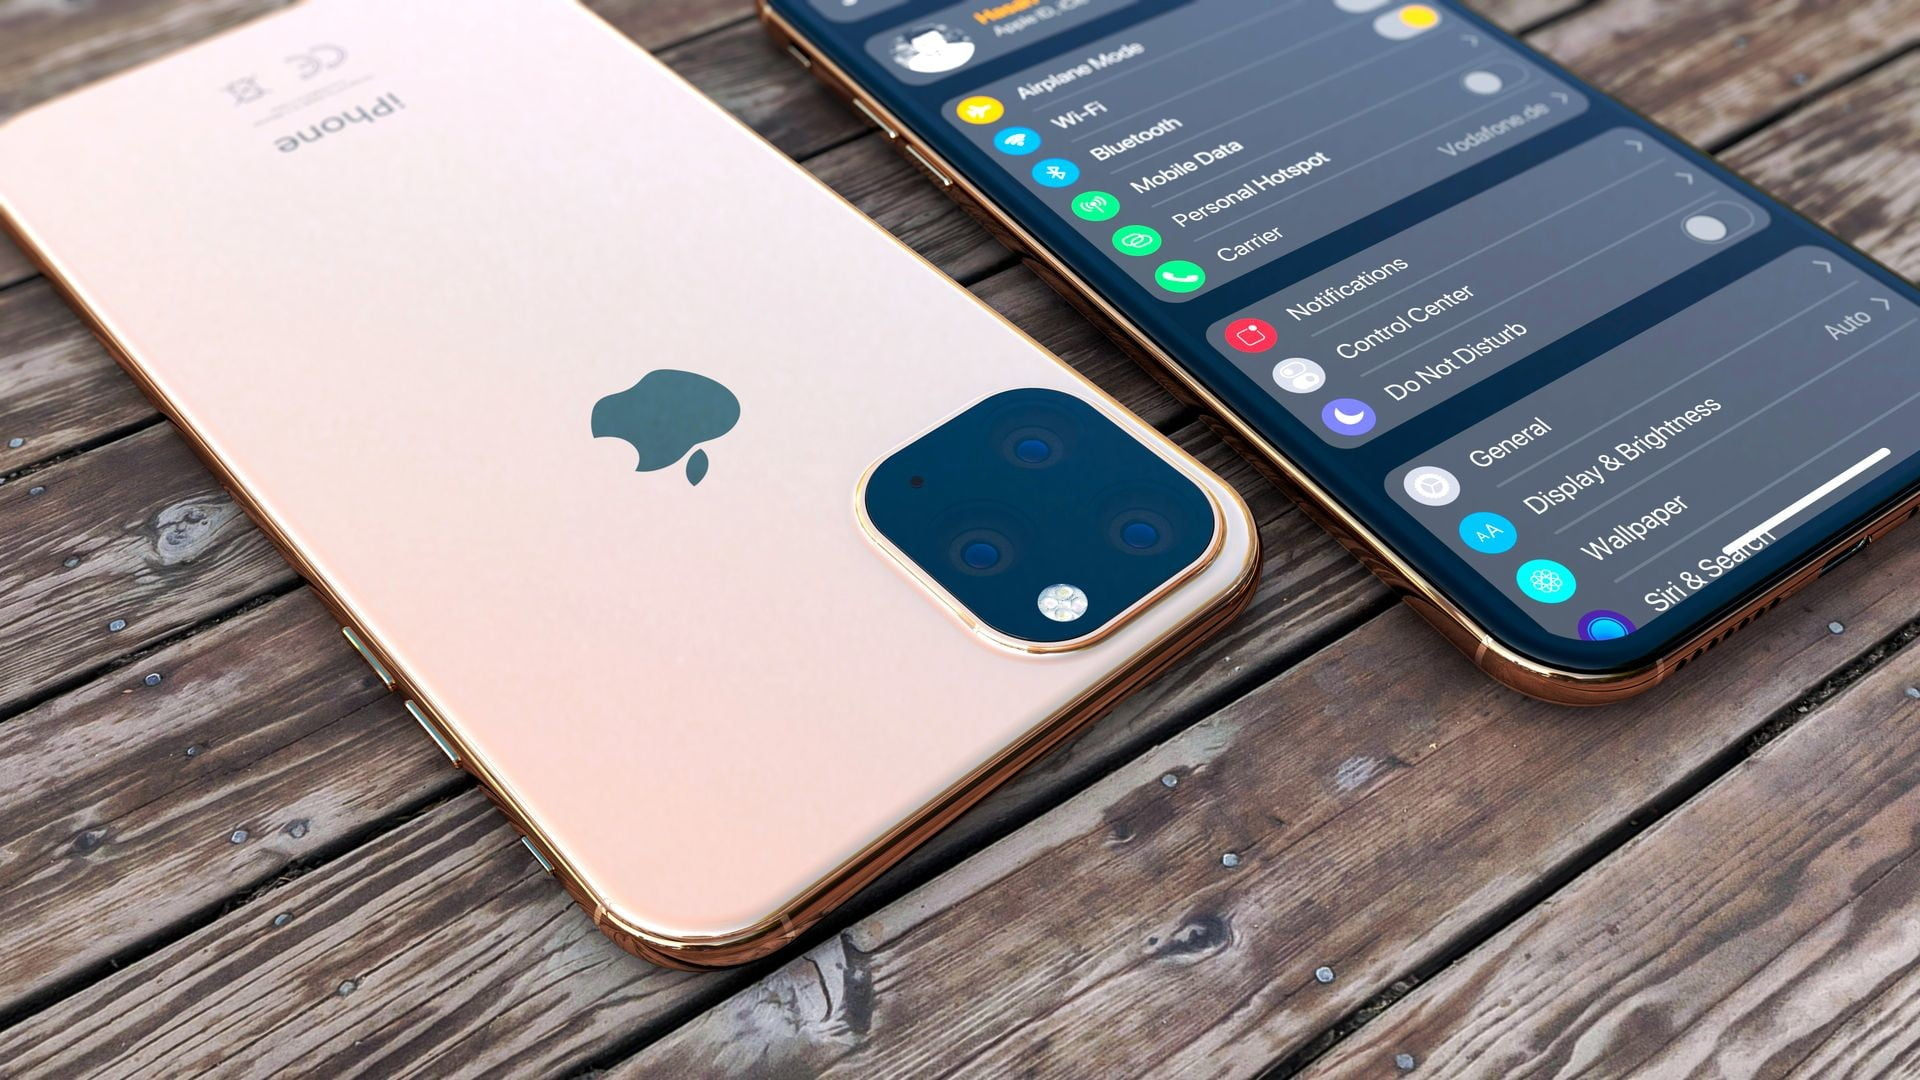 The 2019 iPhone: Here's Everything We Know So Far | Digital Trends